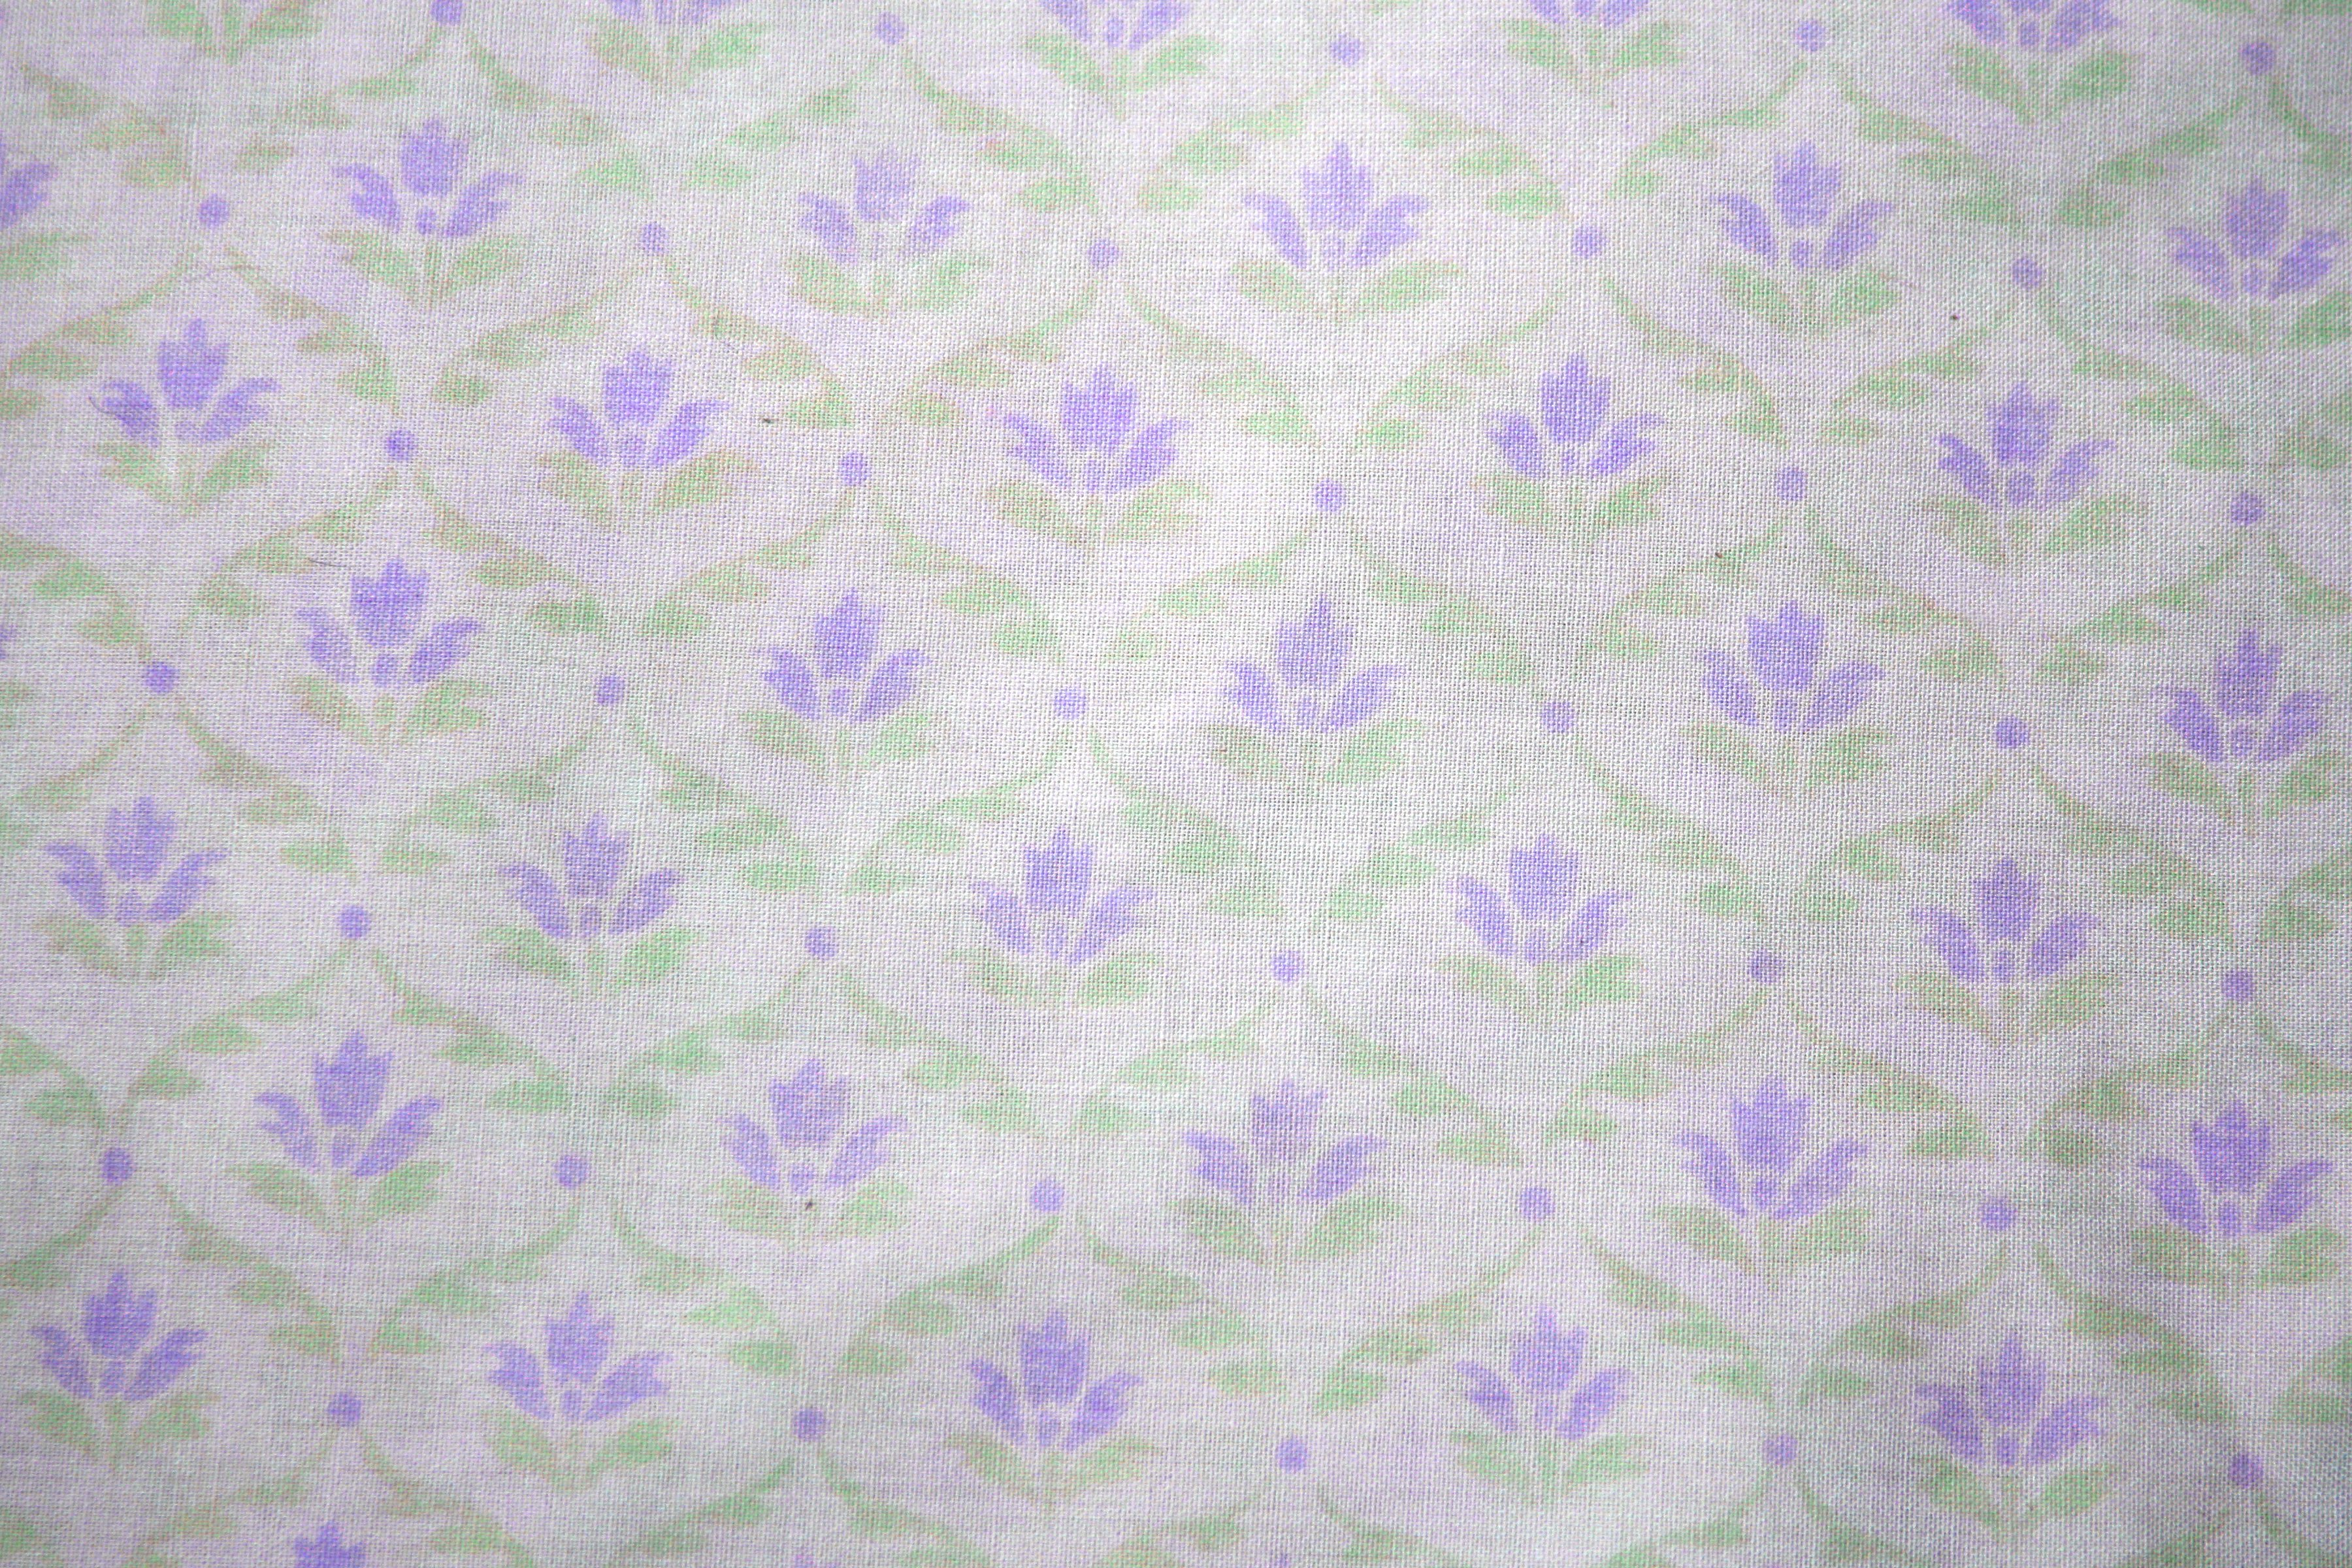 Green and white floral pattern - photo#19